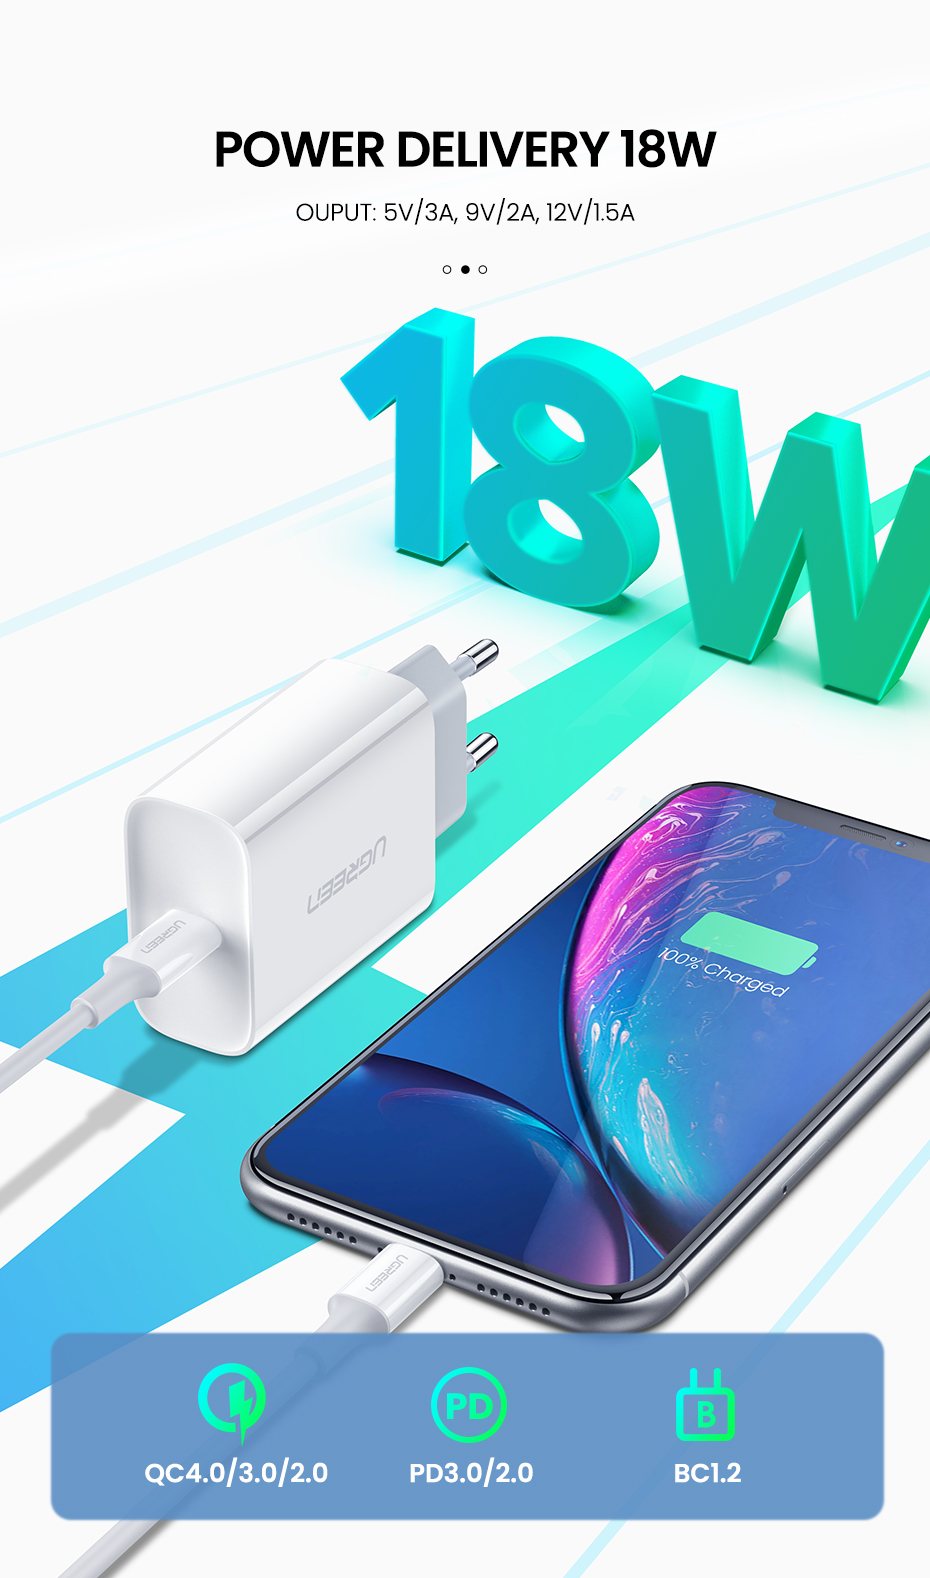 UGREEN USB C Wall Charger, 18W PD 3.0, QC 4.0, Cable Not Included